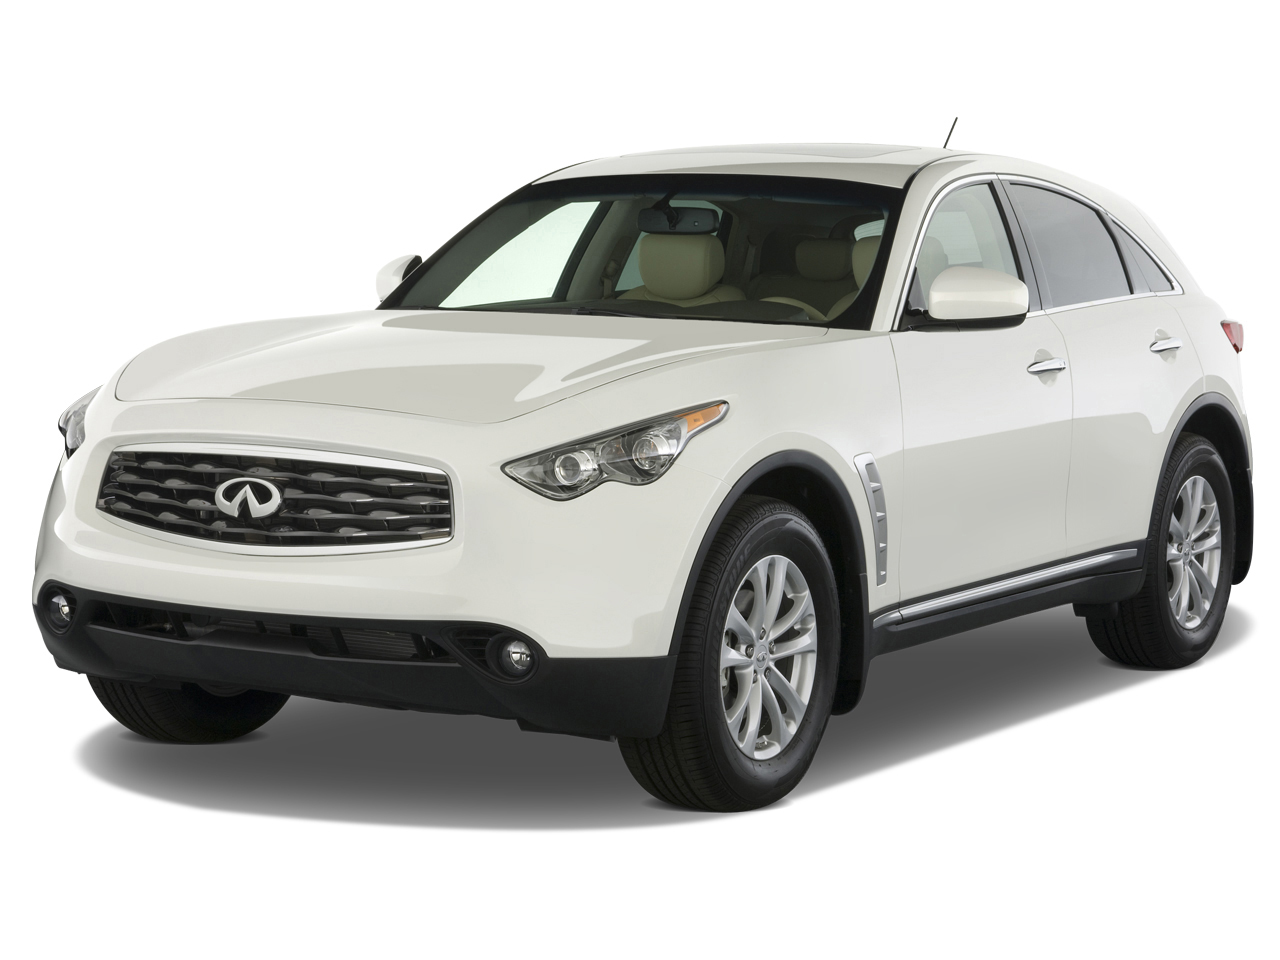 2012 infiniti fx35 quality review the car connection vanachro Gallery